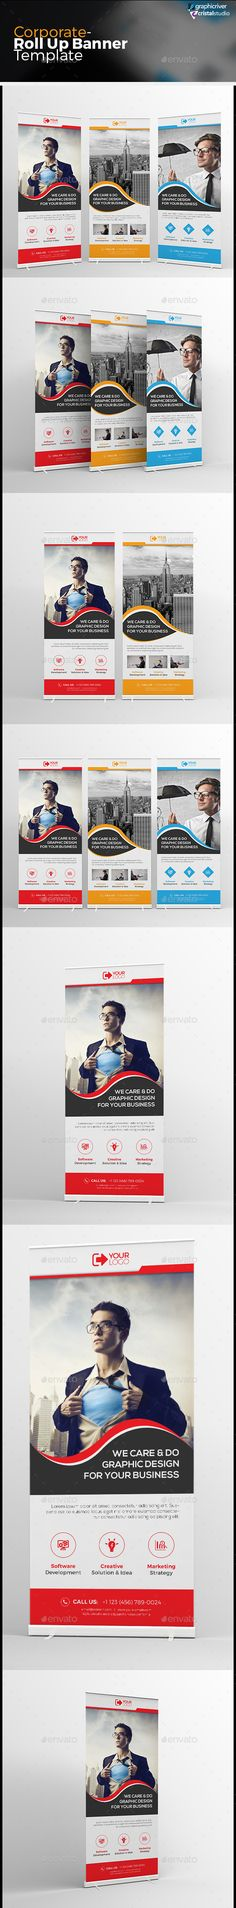 Buy Corporate Roll-up Banner by CRISTAL_P on GraphicRiver. Corporate Roll-up Banner is very easy to use and change text,color,size,look and everything because i made it on ill. Store Signage, Event Signage, Corporate Branding, Corporate Business, Banner Vector, Banner Template, Signage Design, Banner Design, Roll Up Design